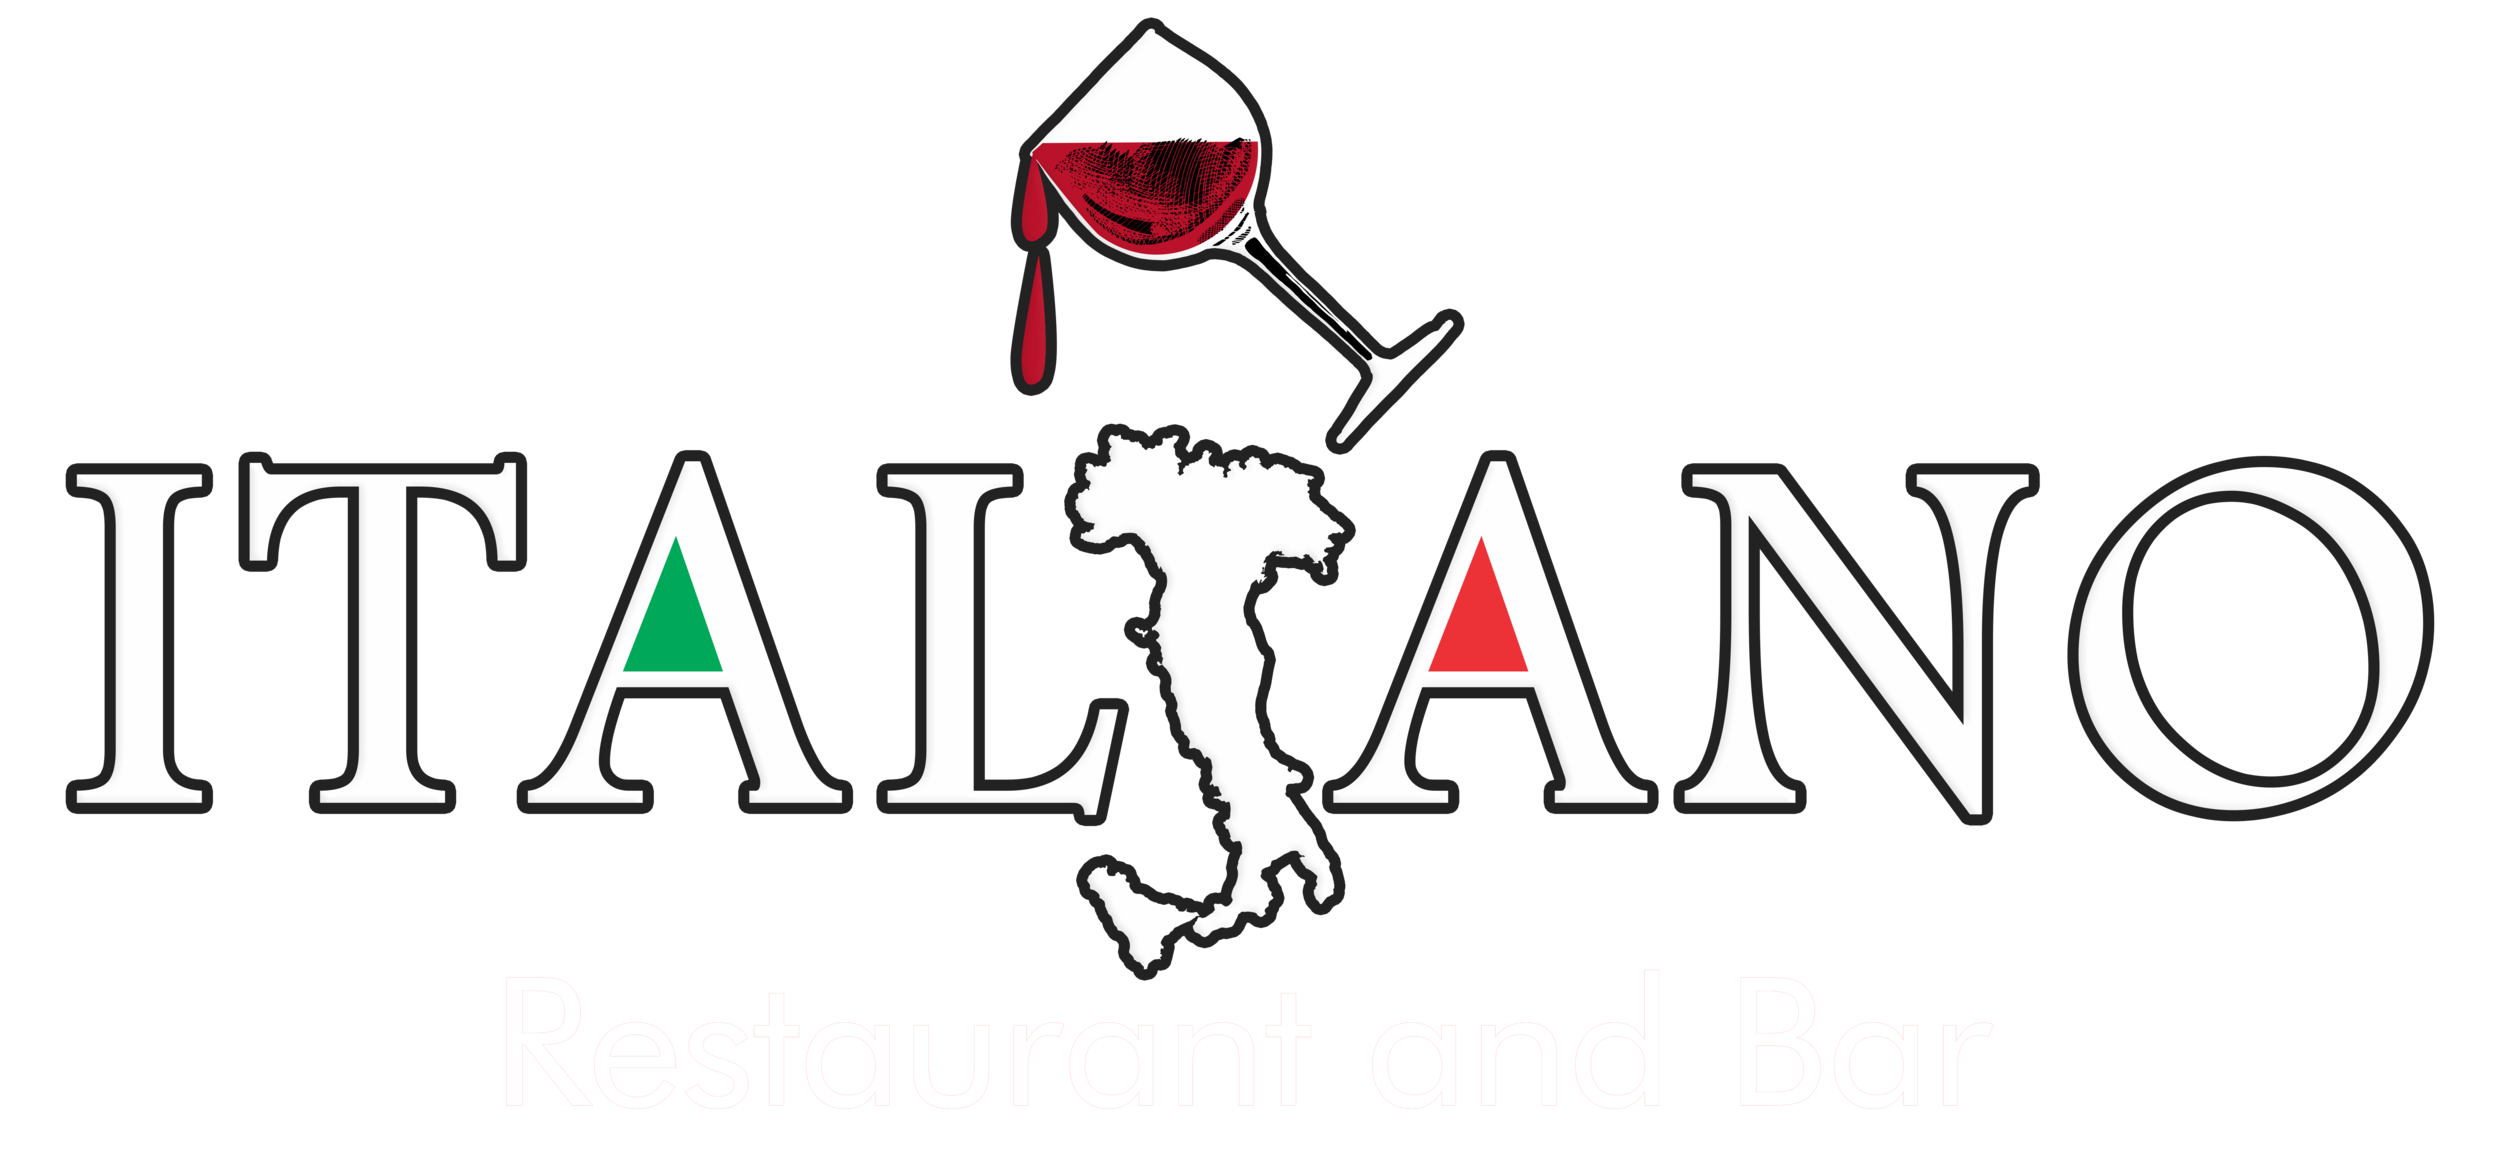 Italiano Restaurant and Bar